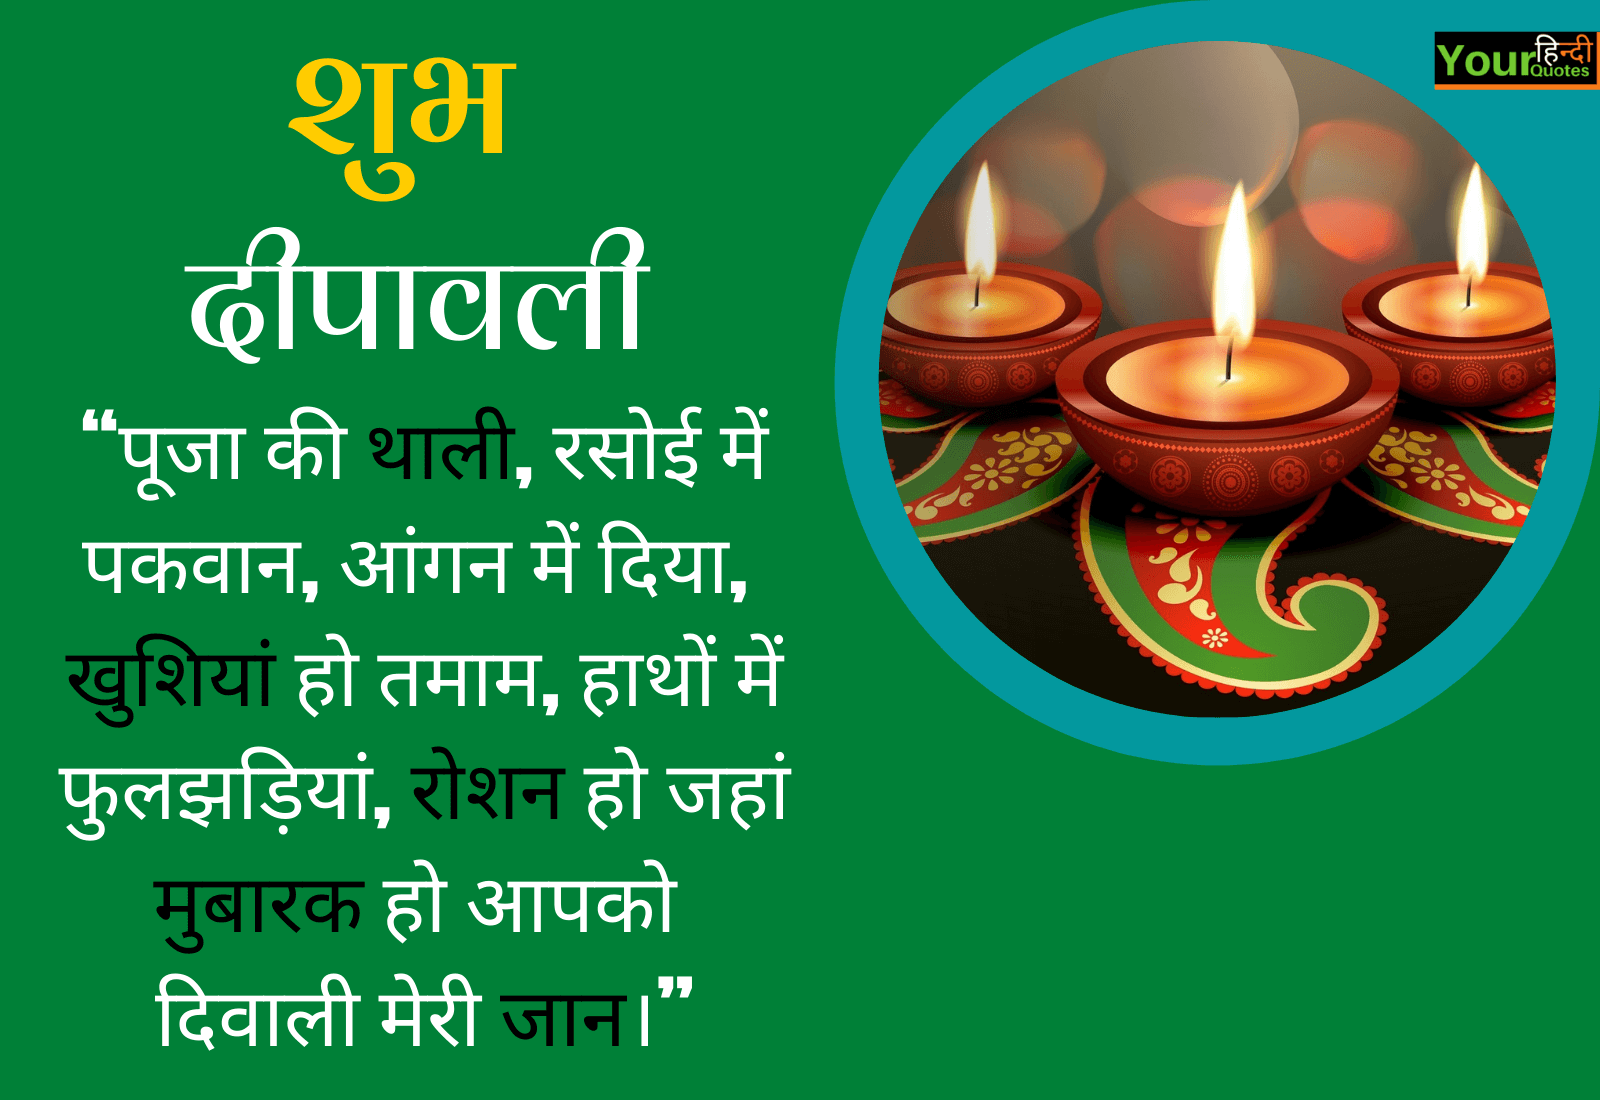 Happy Diwali in Hindi quotes Images